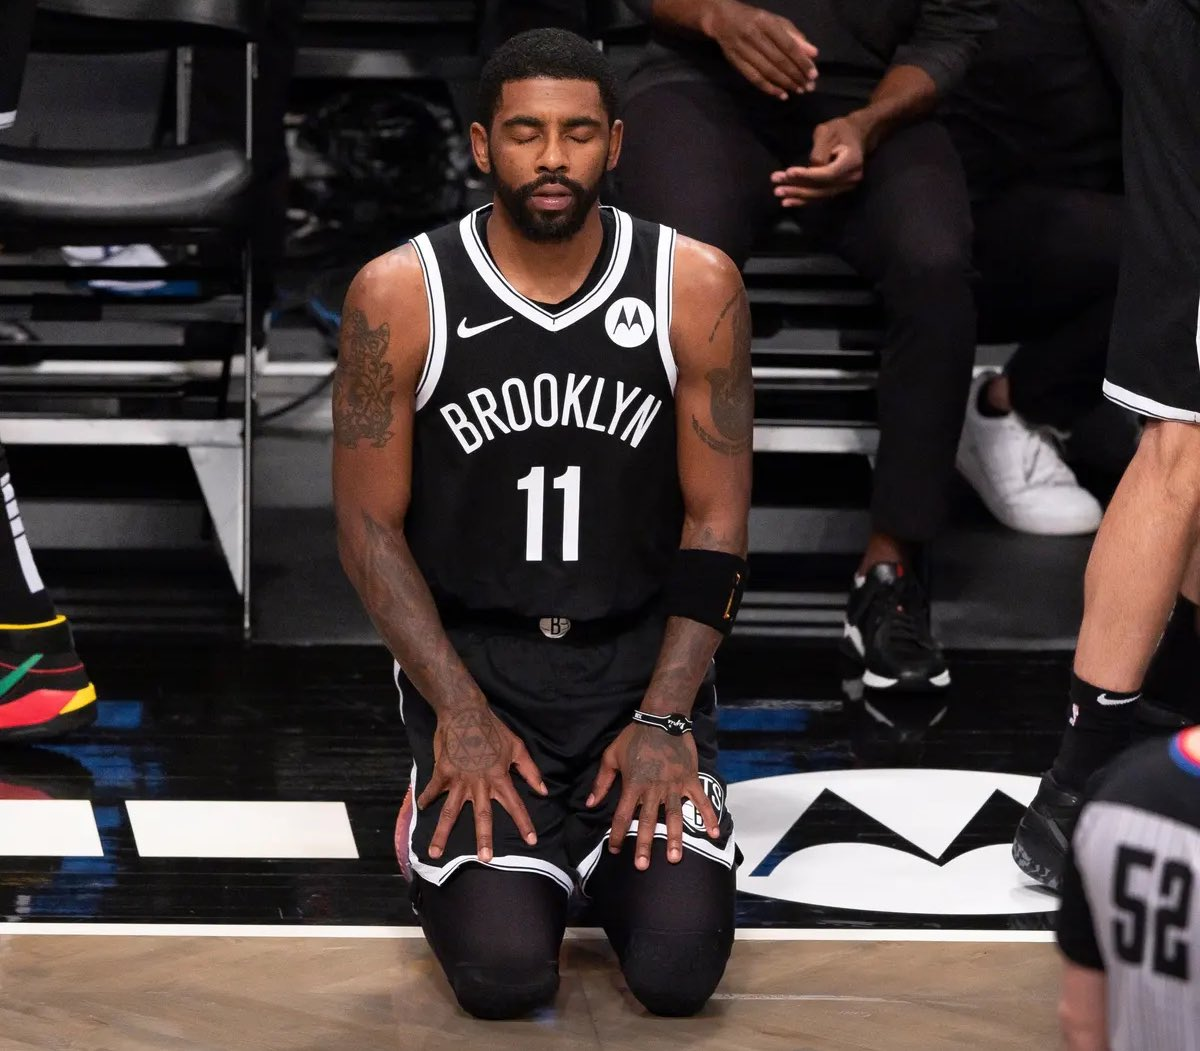 Kyrie recently converted to Islam and is taking part in Ramadan this month where Muslims fast every day. People are bashing him for taking games off without understanding why. https://t.co/yqLPbyqCqp